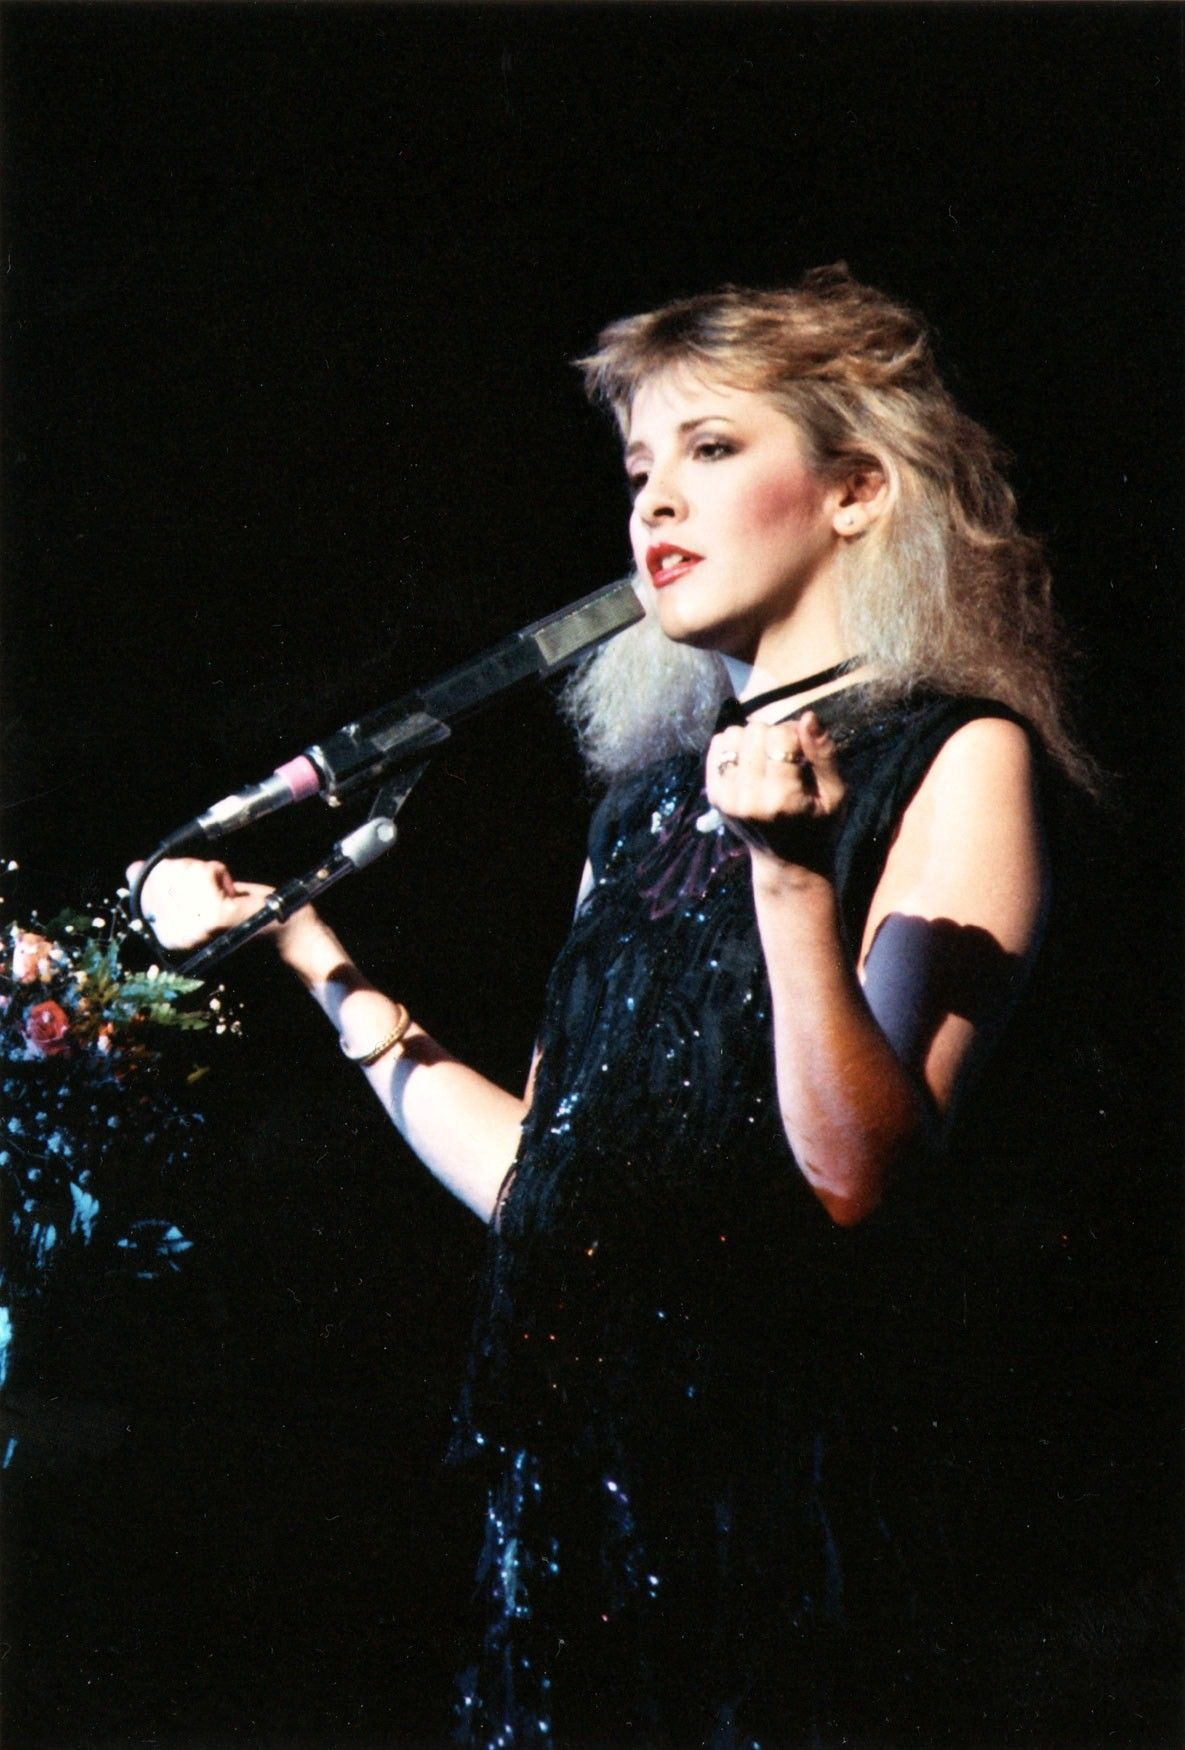 In Your Dreams Her Petite Pretty Forearms And Hands Have Always Been Very Expressive Ballet Hands Lol Stevie Nicks Stevie Stevie Nicks Fleetwood Mac [ 1750 x 1185 Pixel ]